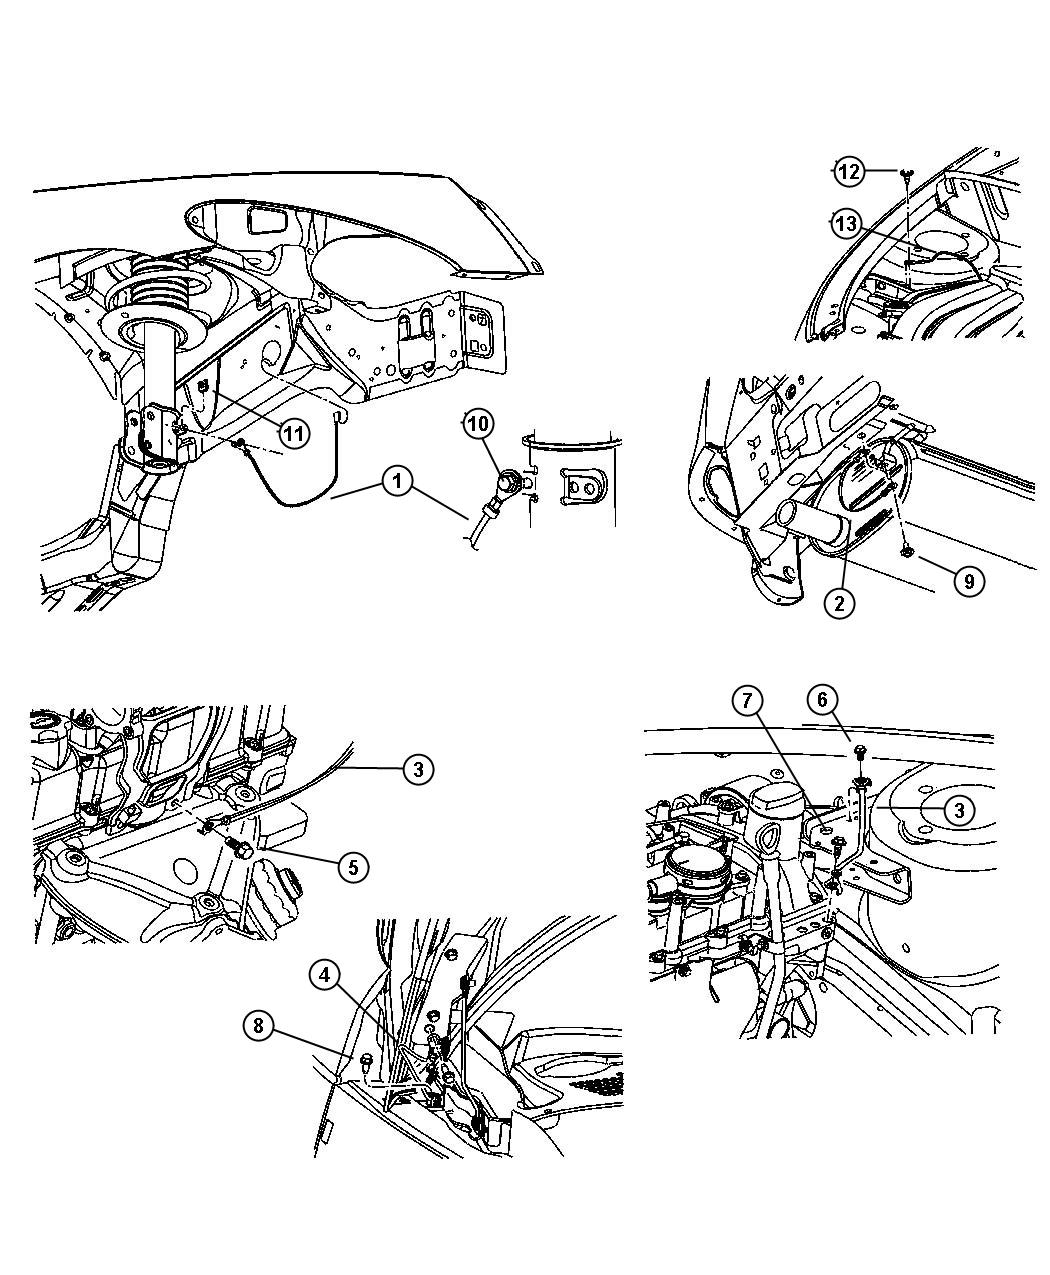 Case Also Ford Alternator Wiring Diagram In Addition 1946 Chevy Truck